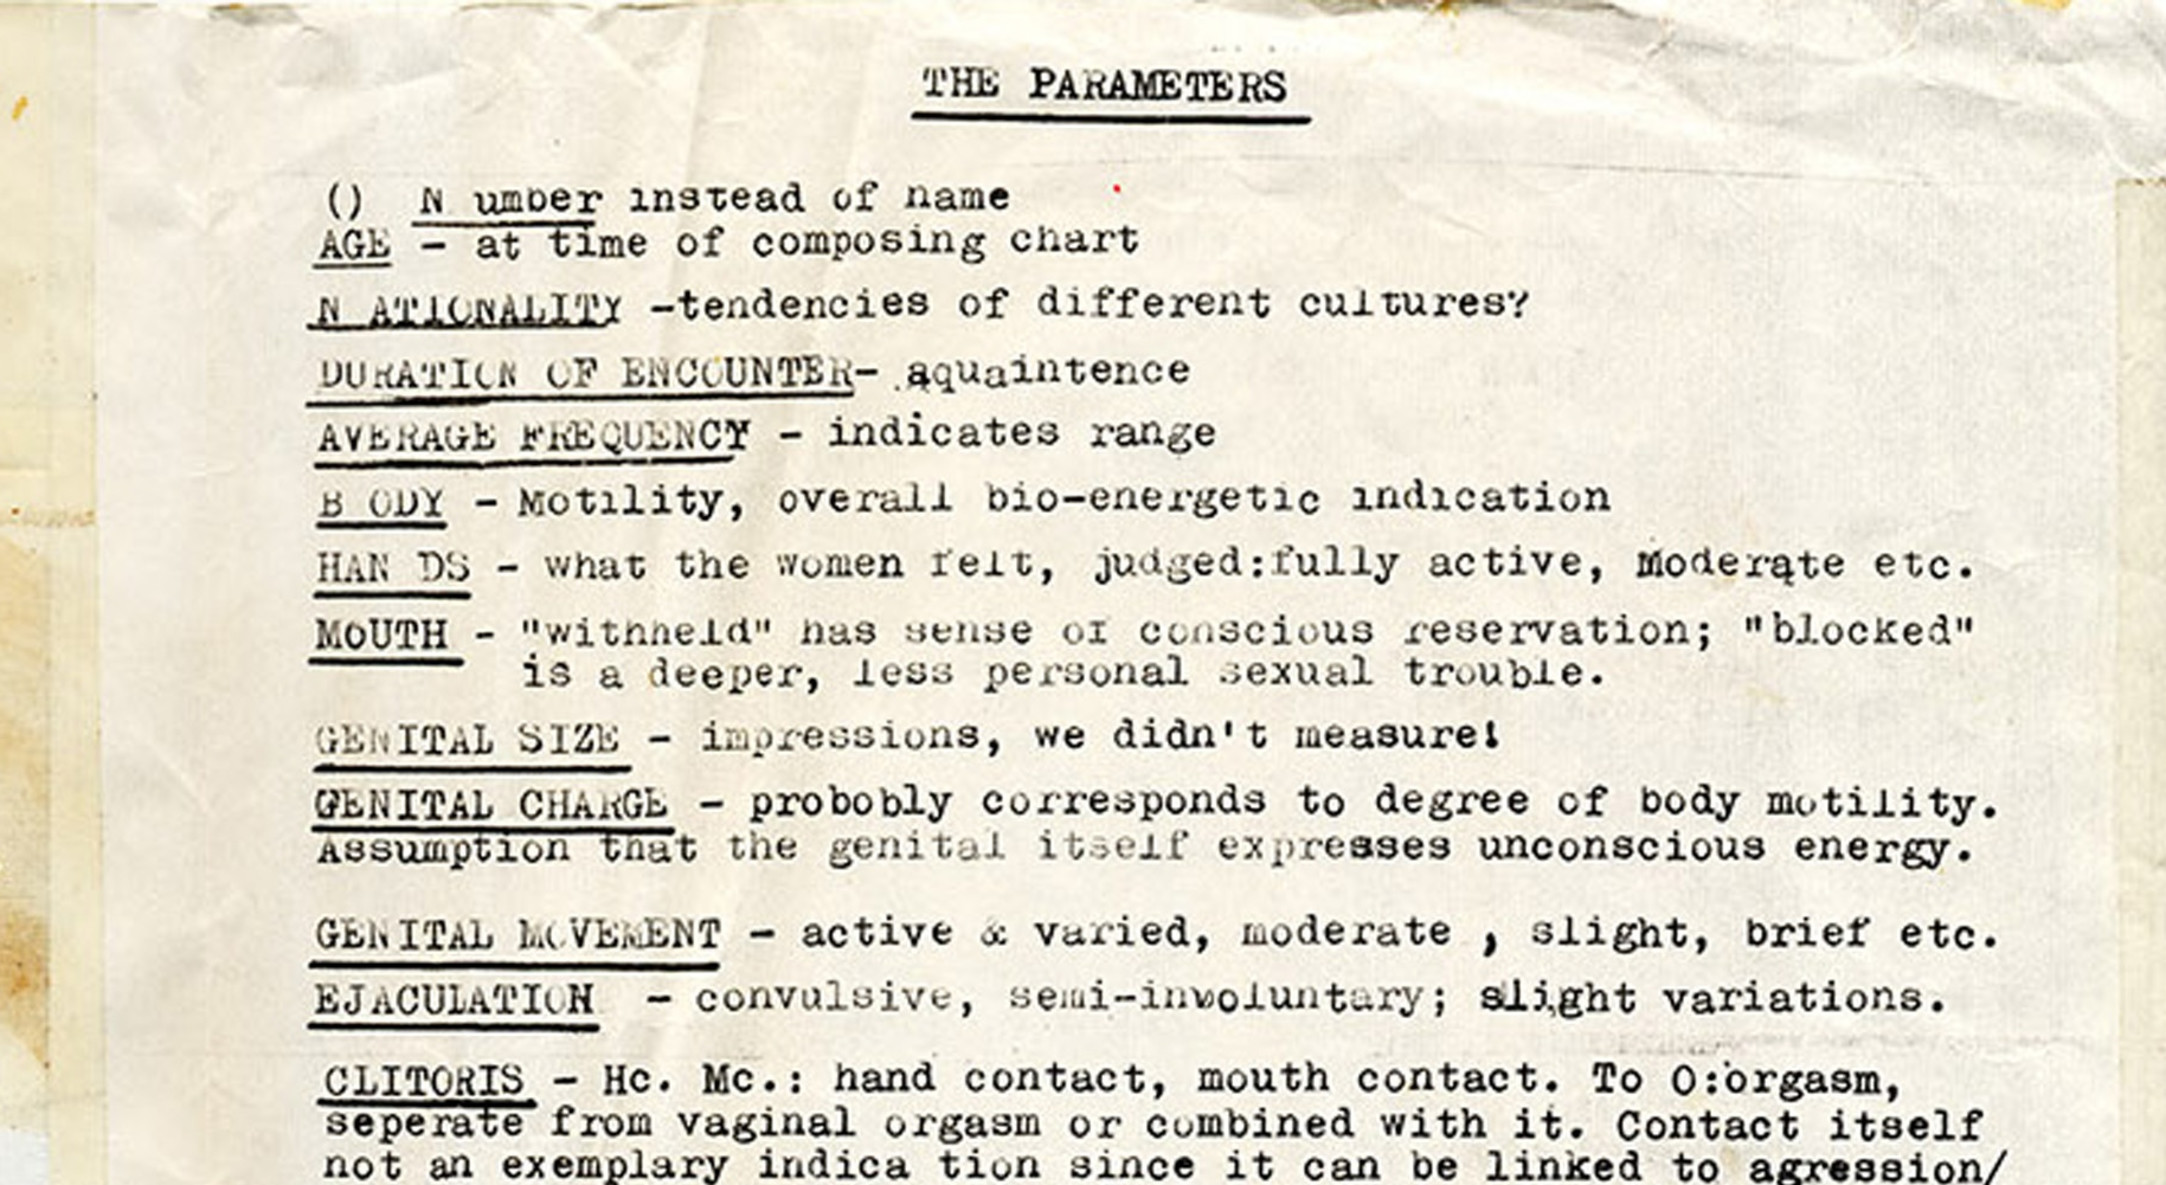 Detail of Carolee Schneemann, Ye Olde Sex Chart (Sexual Parameters Chart), 1969-71, 1975, Unique xerox print with pen, 26.7 x 120.7 cm, 10 1/2 x 47 1/2 in